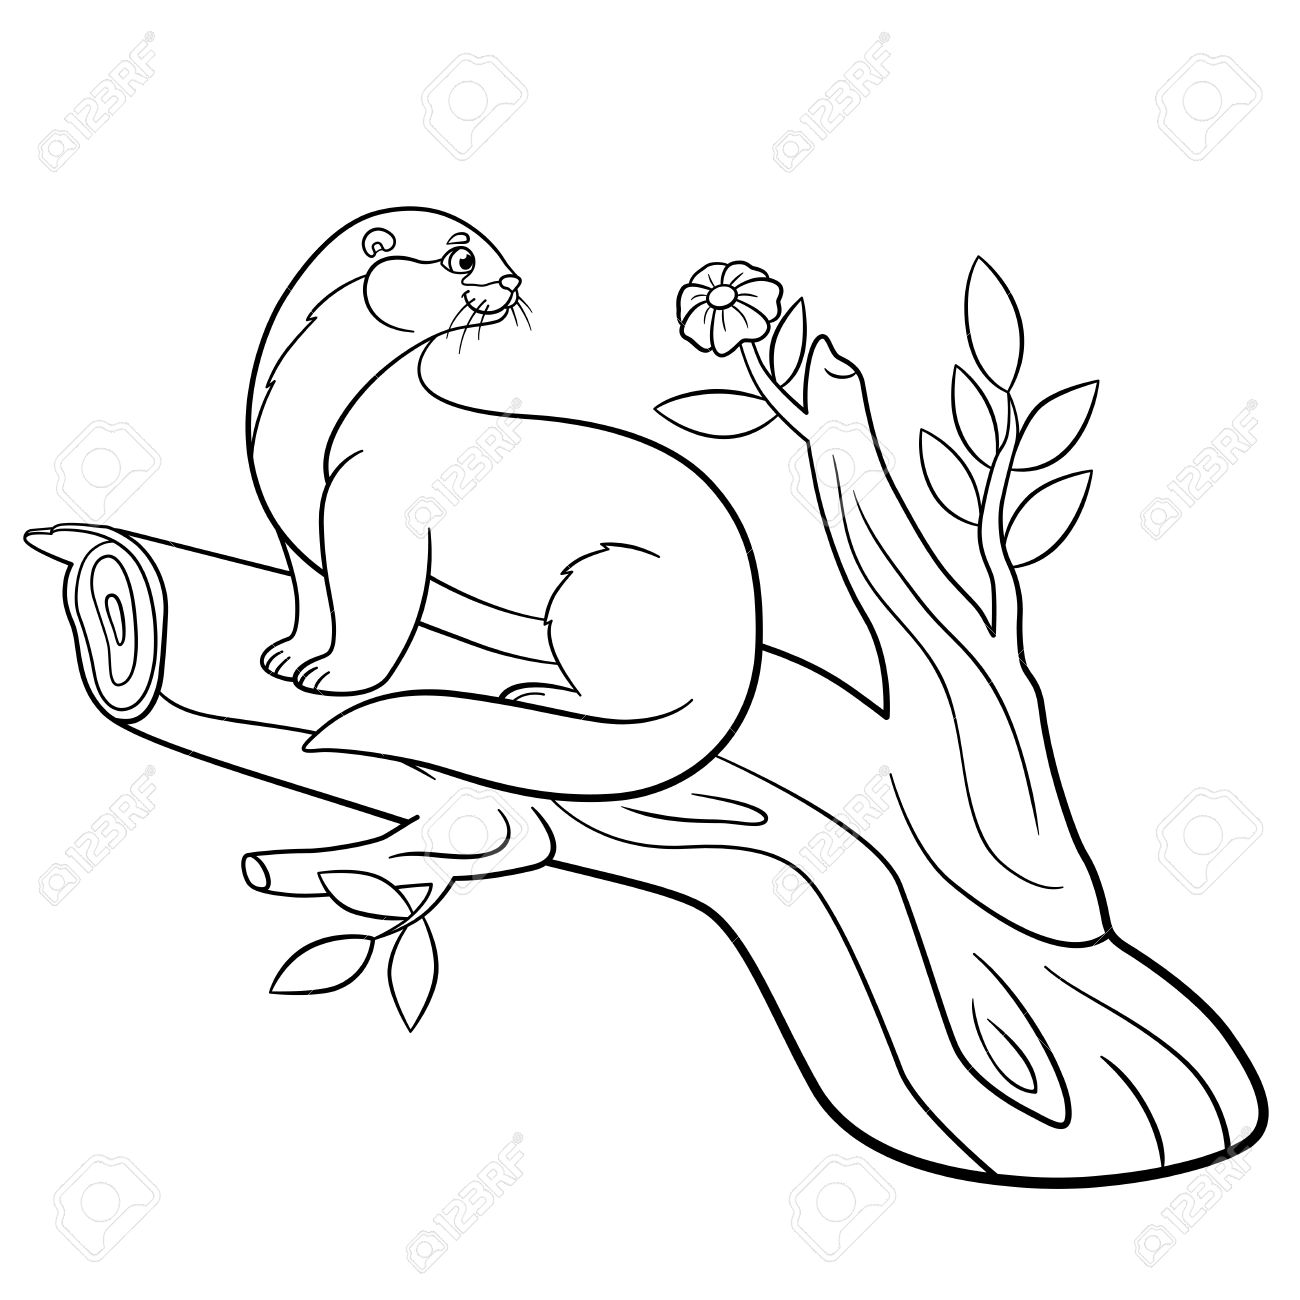 Coloring Pages Little Cute Otter Sits On The Tree Branch And